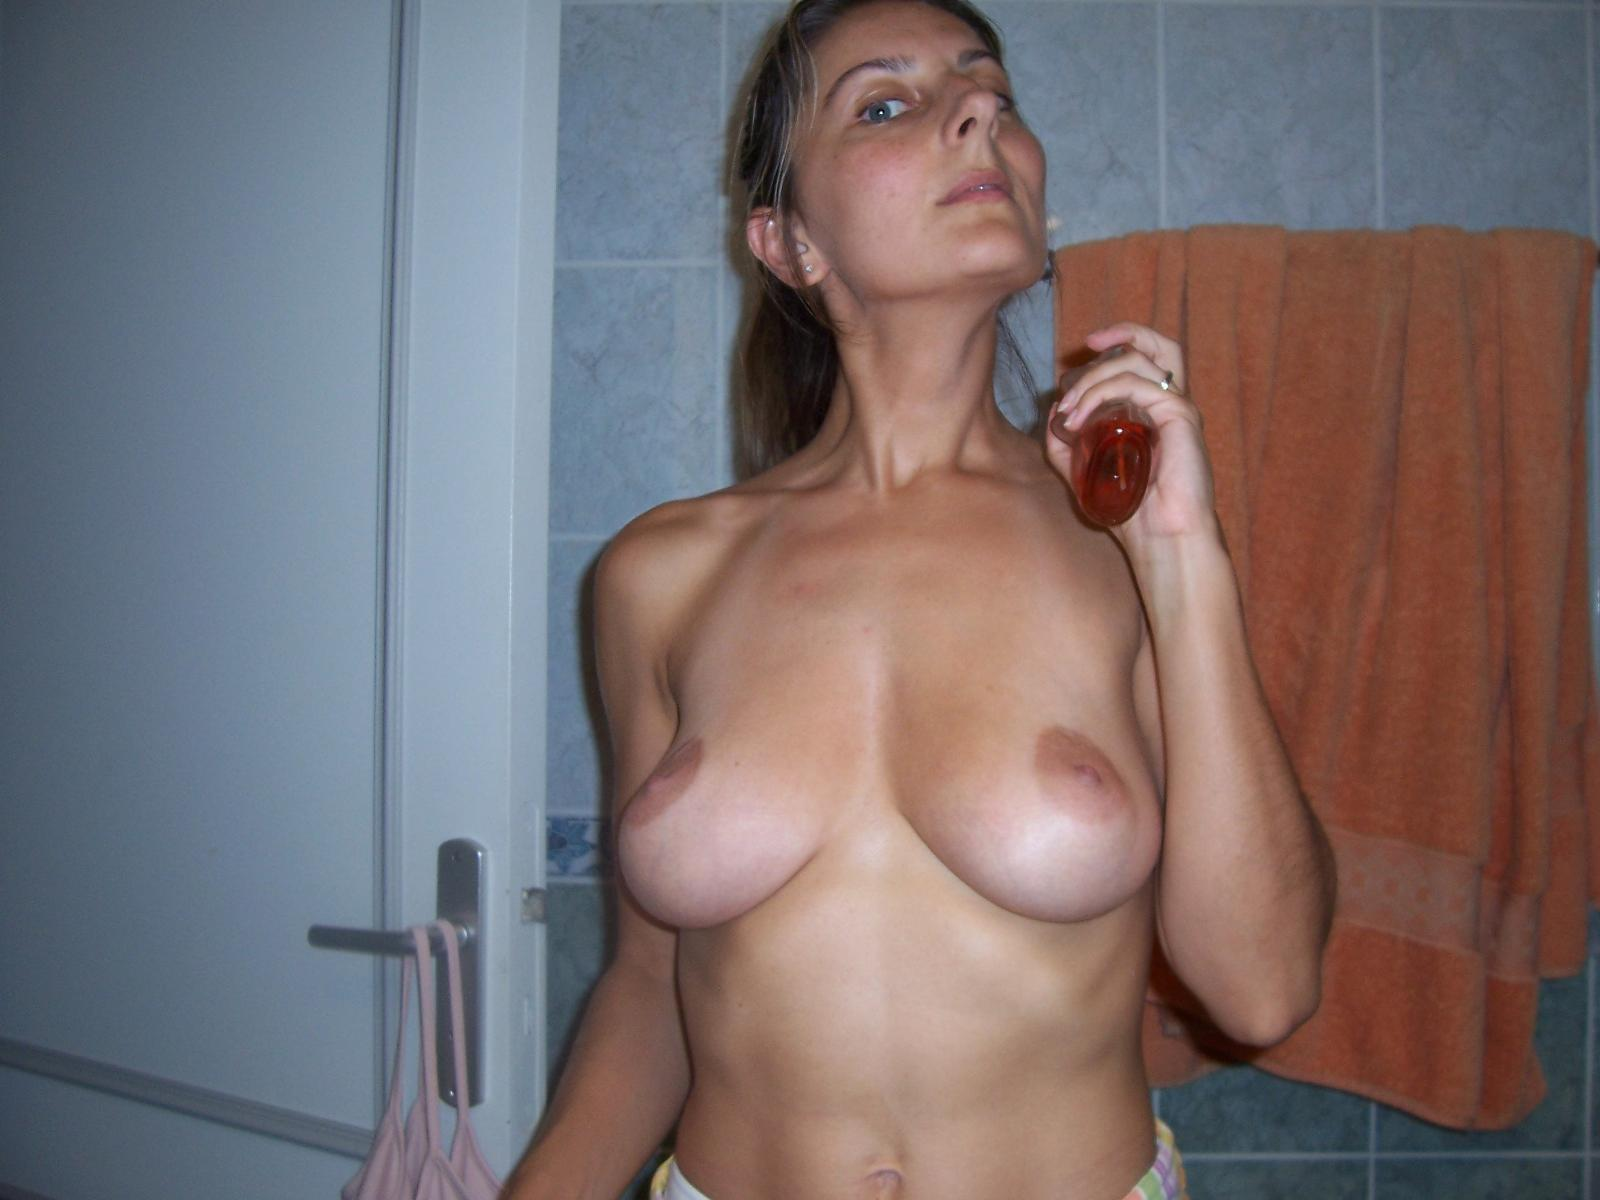 real incest mom Final Mom's Real Incest Pics for Son